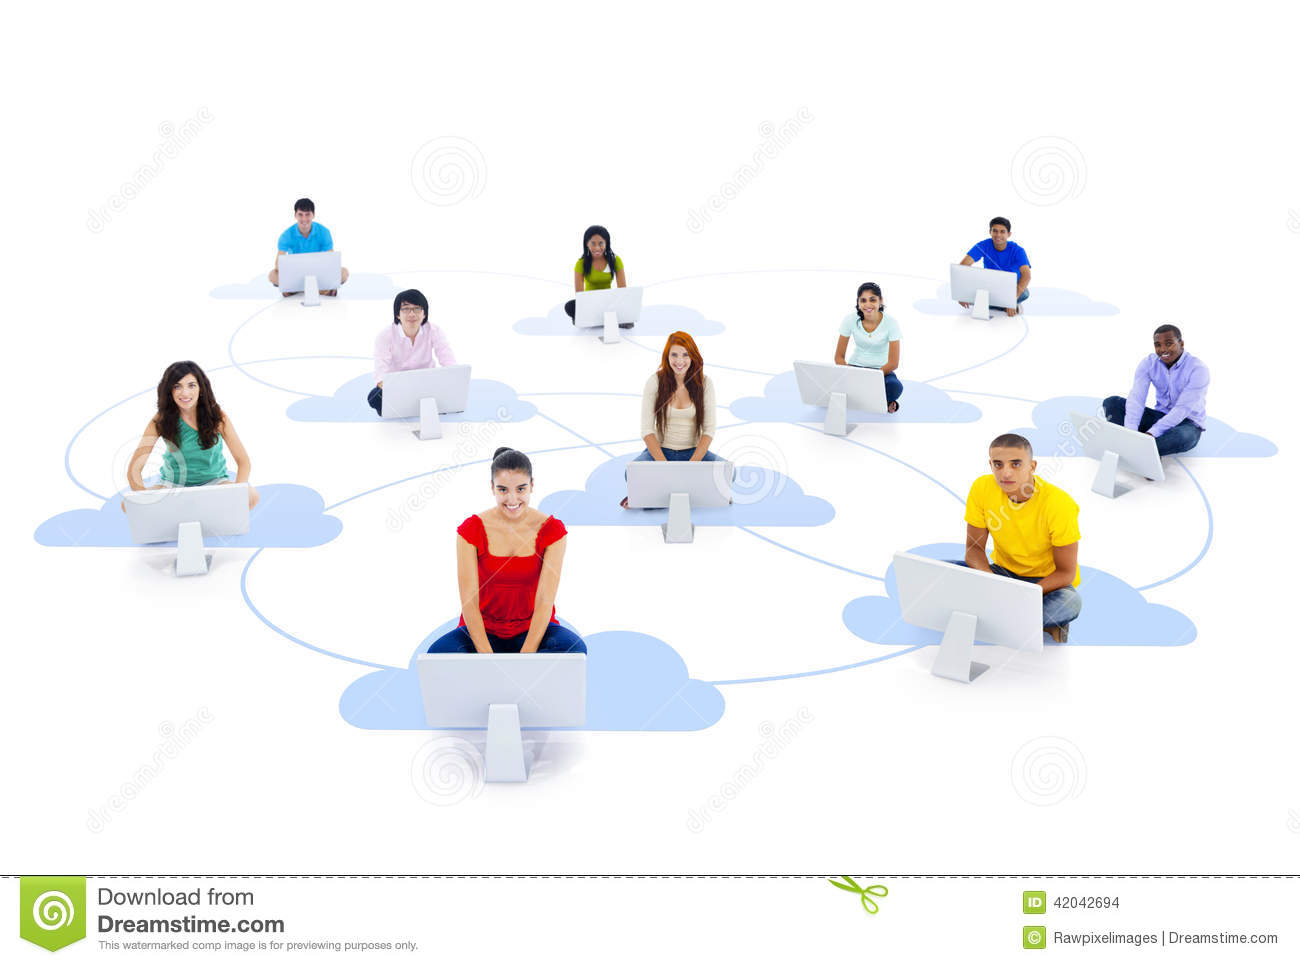 Computer Connected By 2 People : Group of connected multi ethnic people sitting on a cloud